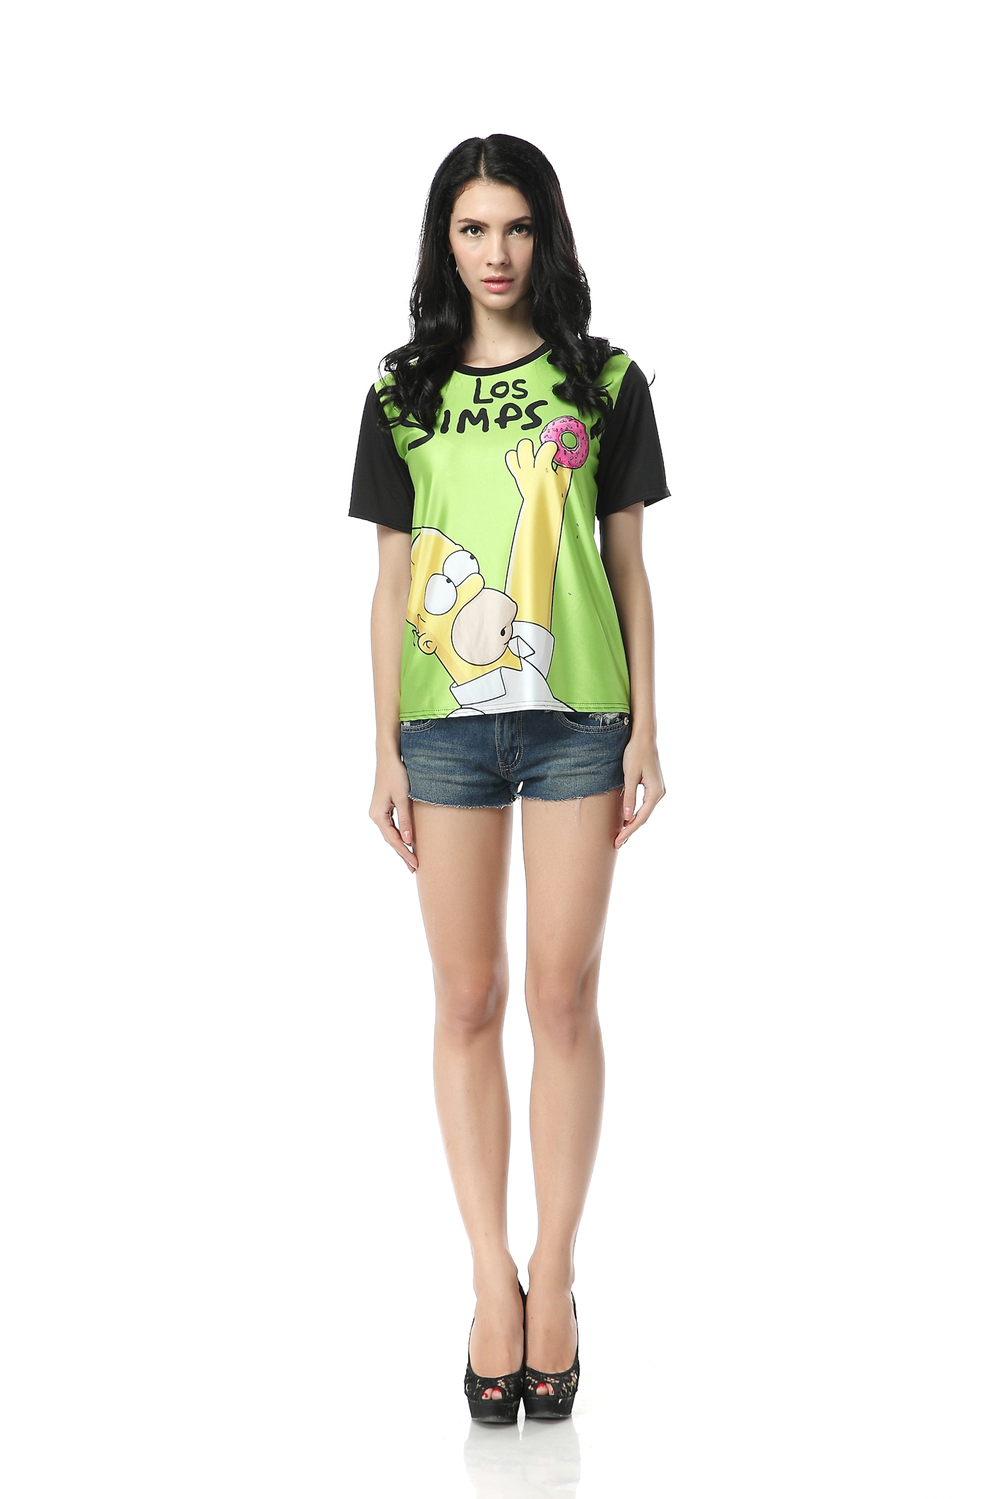 Women 2013 Korean Character Humor Simpsons T shirt  Black O neck Digital Tie dyed Short sleeved Clothes Wholesale FREE SHIPPING-in T-Shirts from Apparel & Accessories on Aliexpress.com